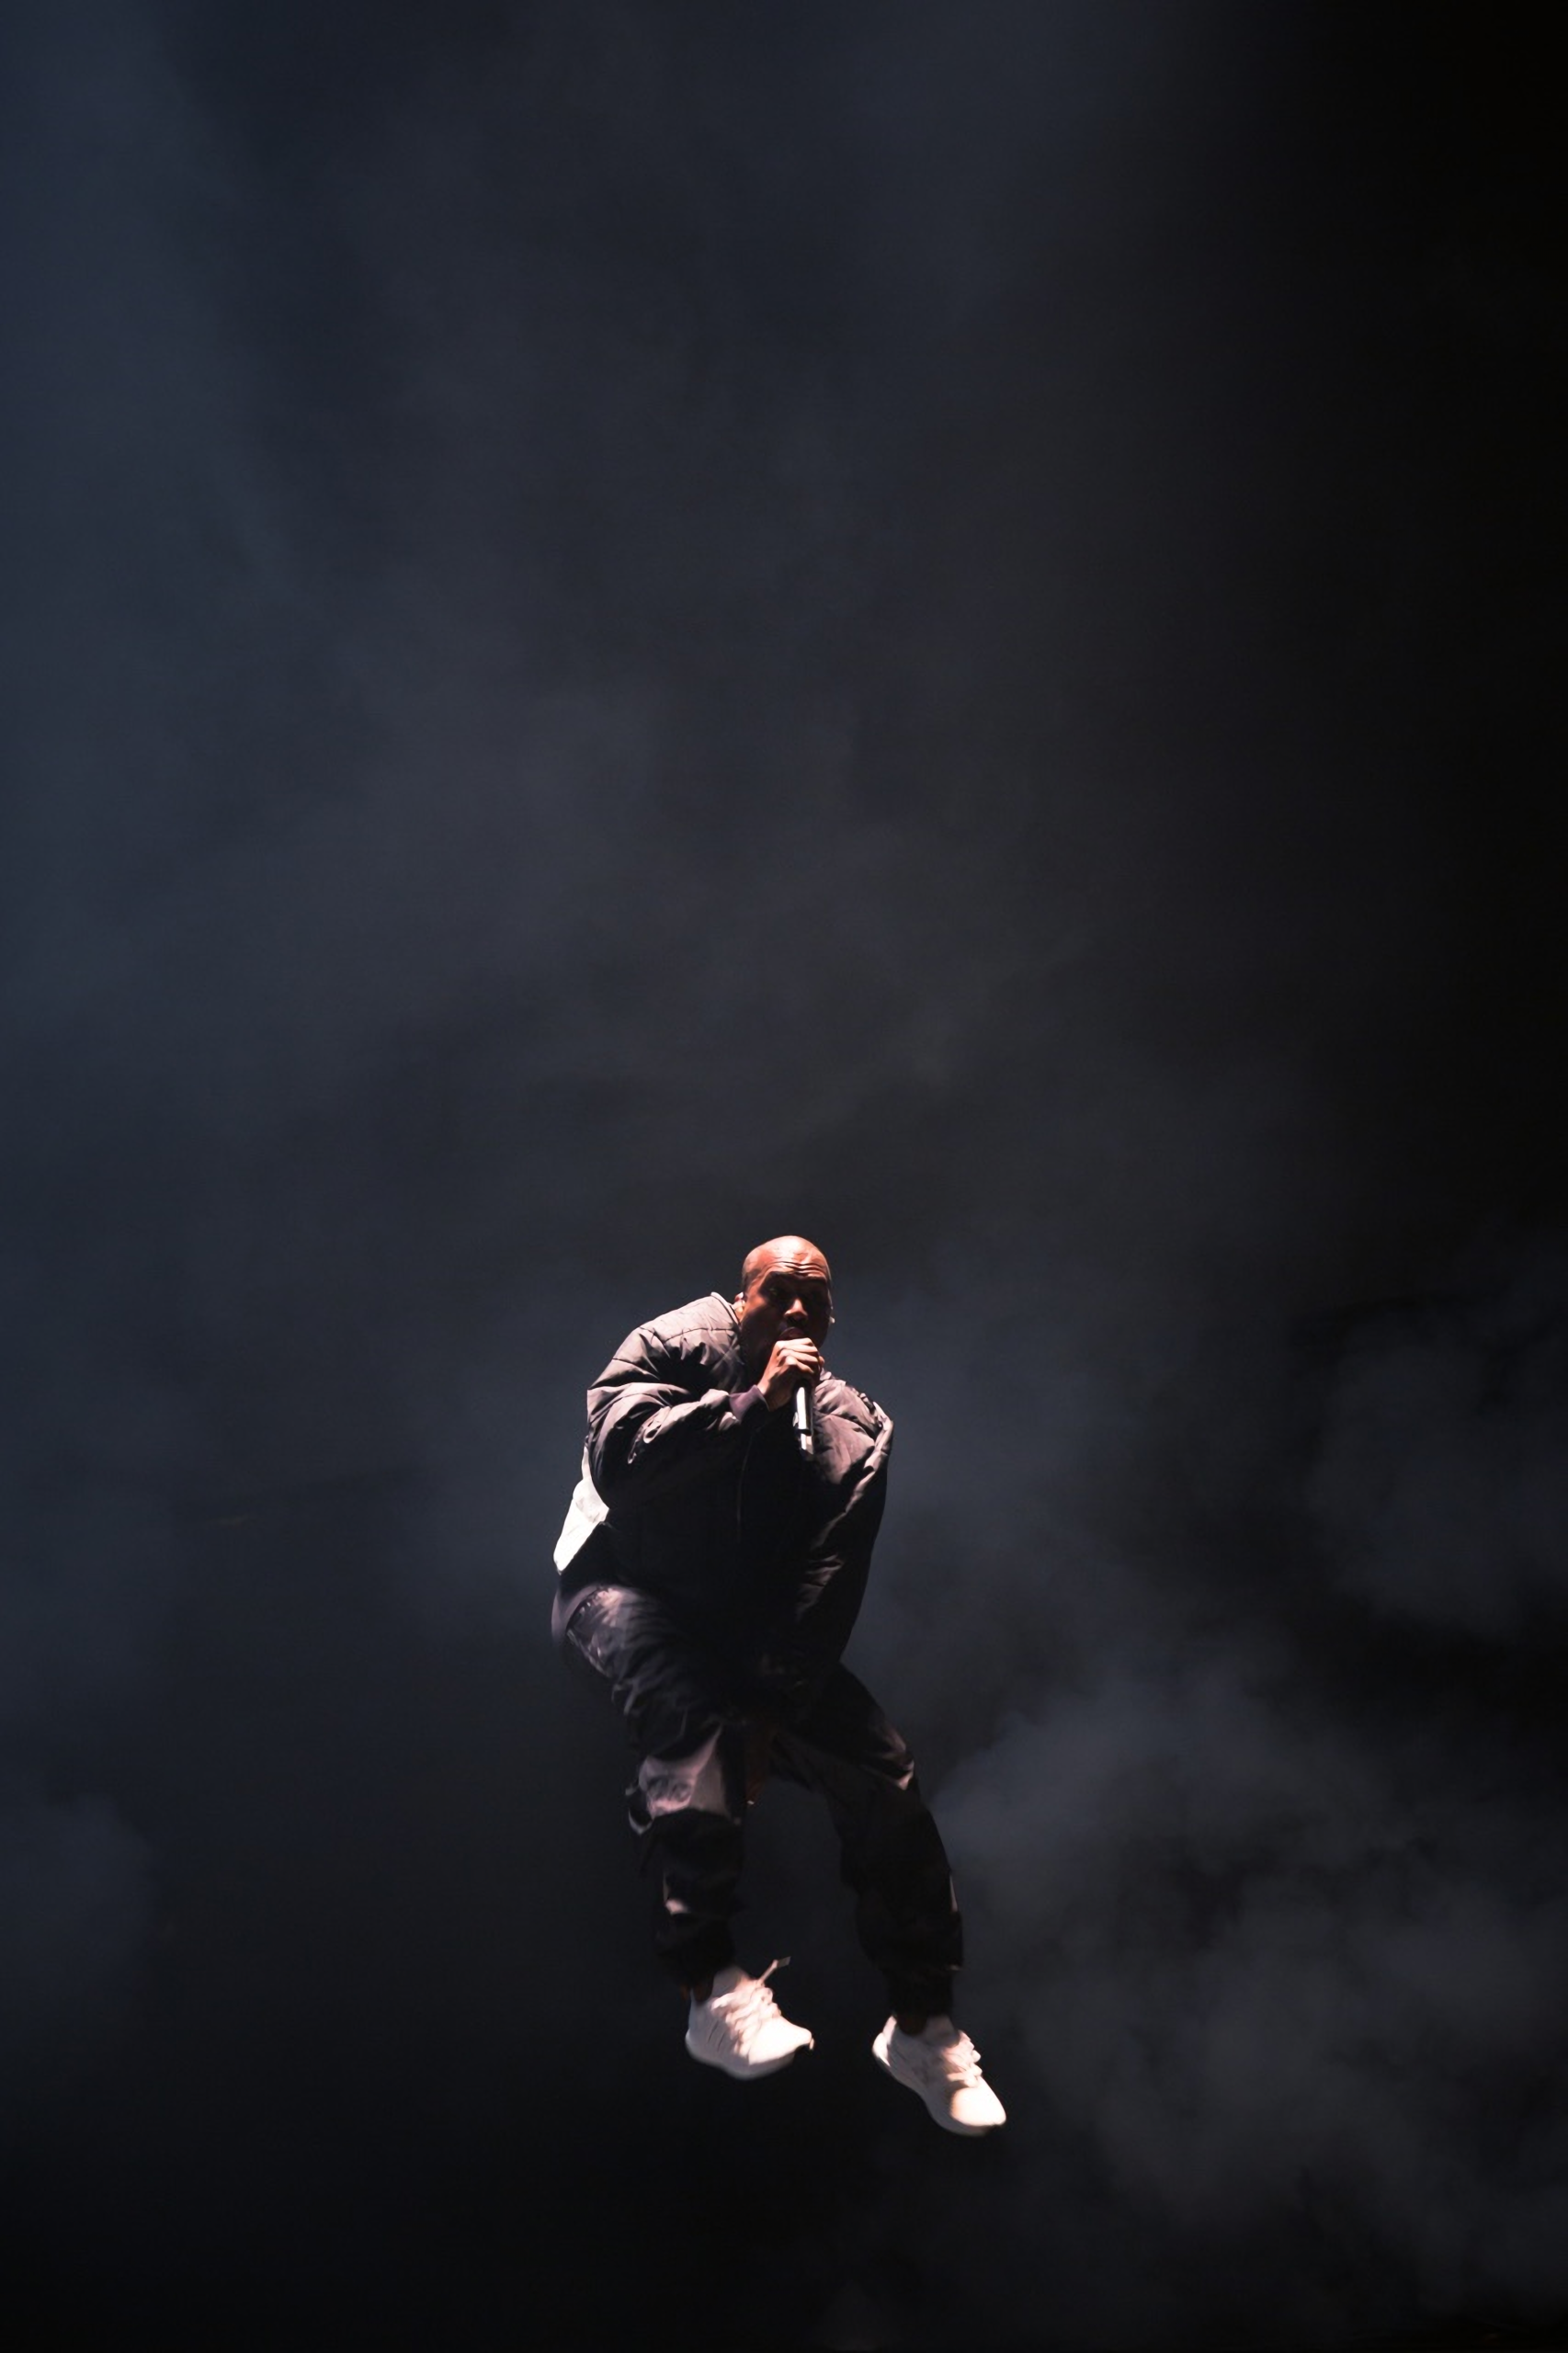 Kanye West Wallpaper Picture On Wallpaper 1080p Hd Kanye West Wallpaper Yeezus Wallpaper Rap Wallpaper